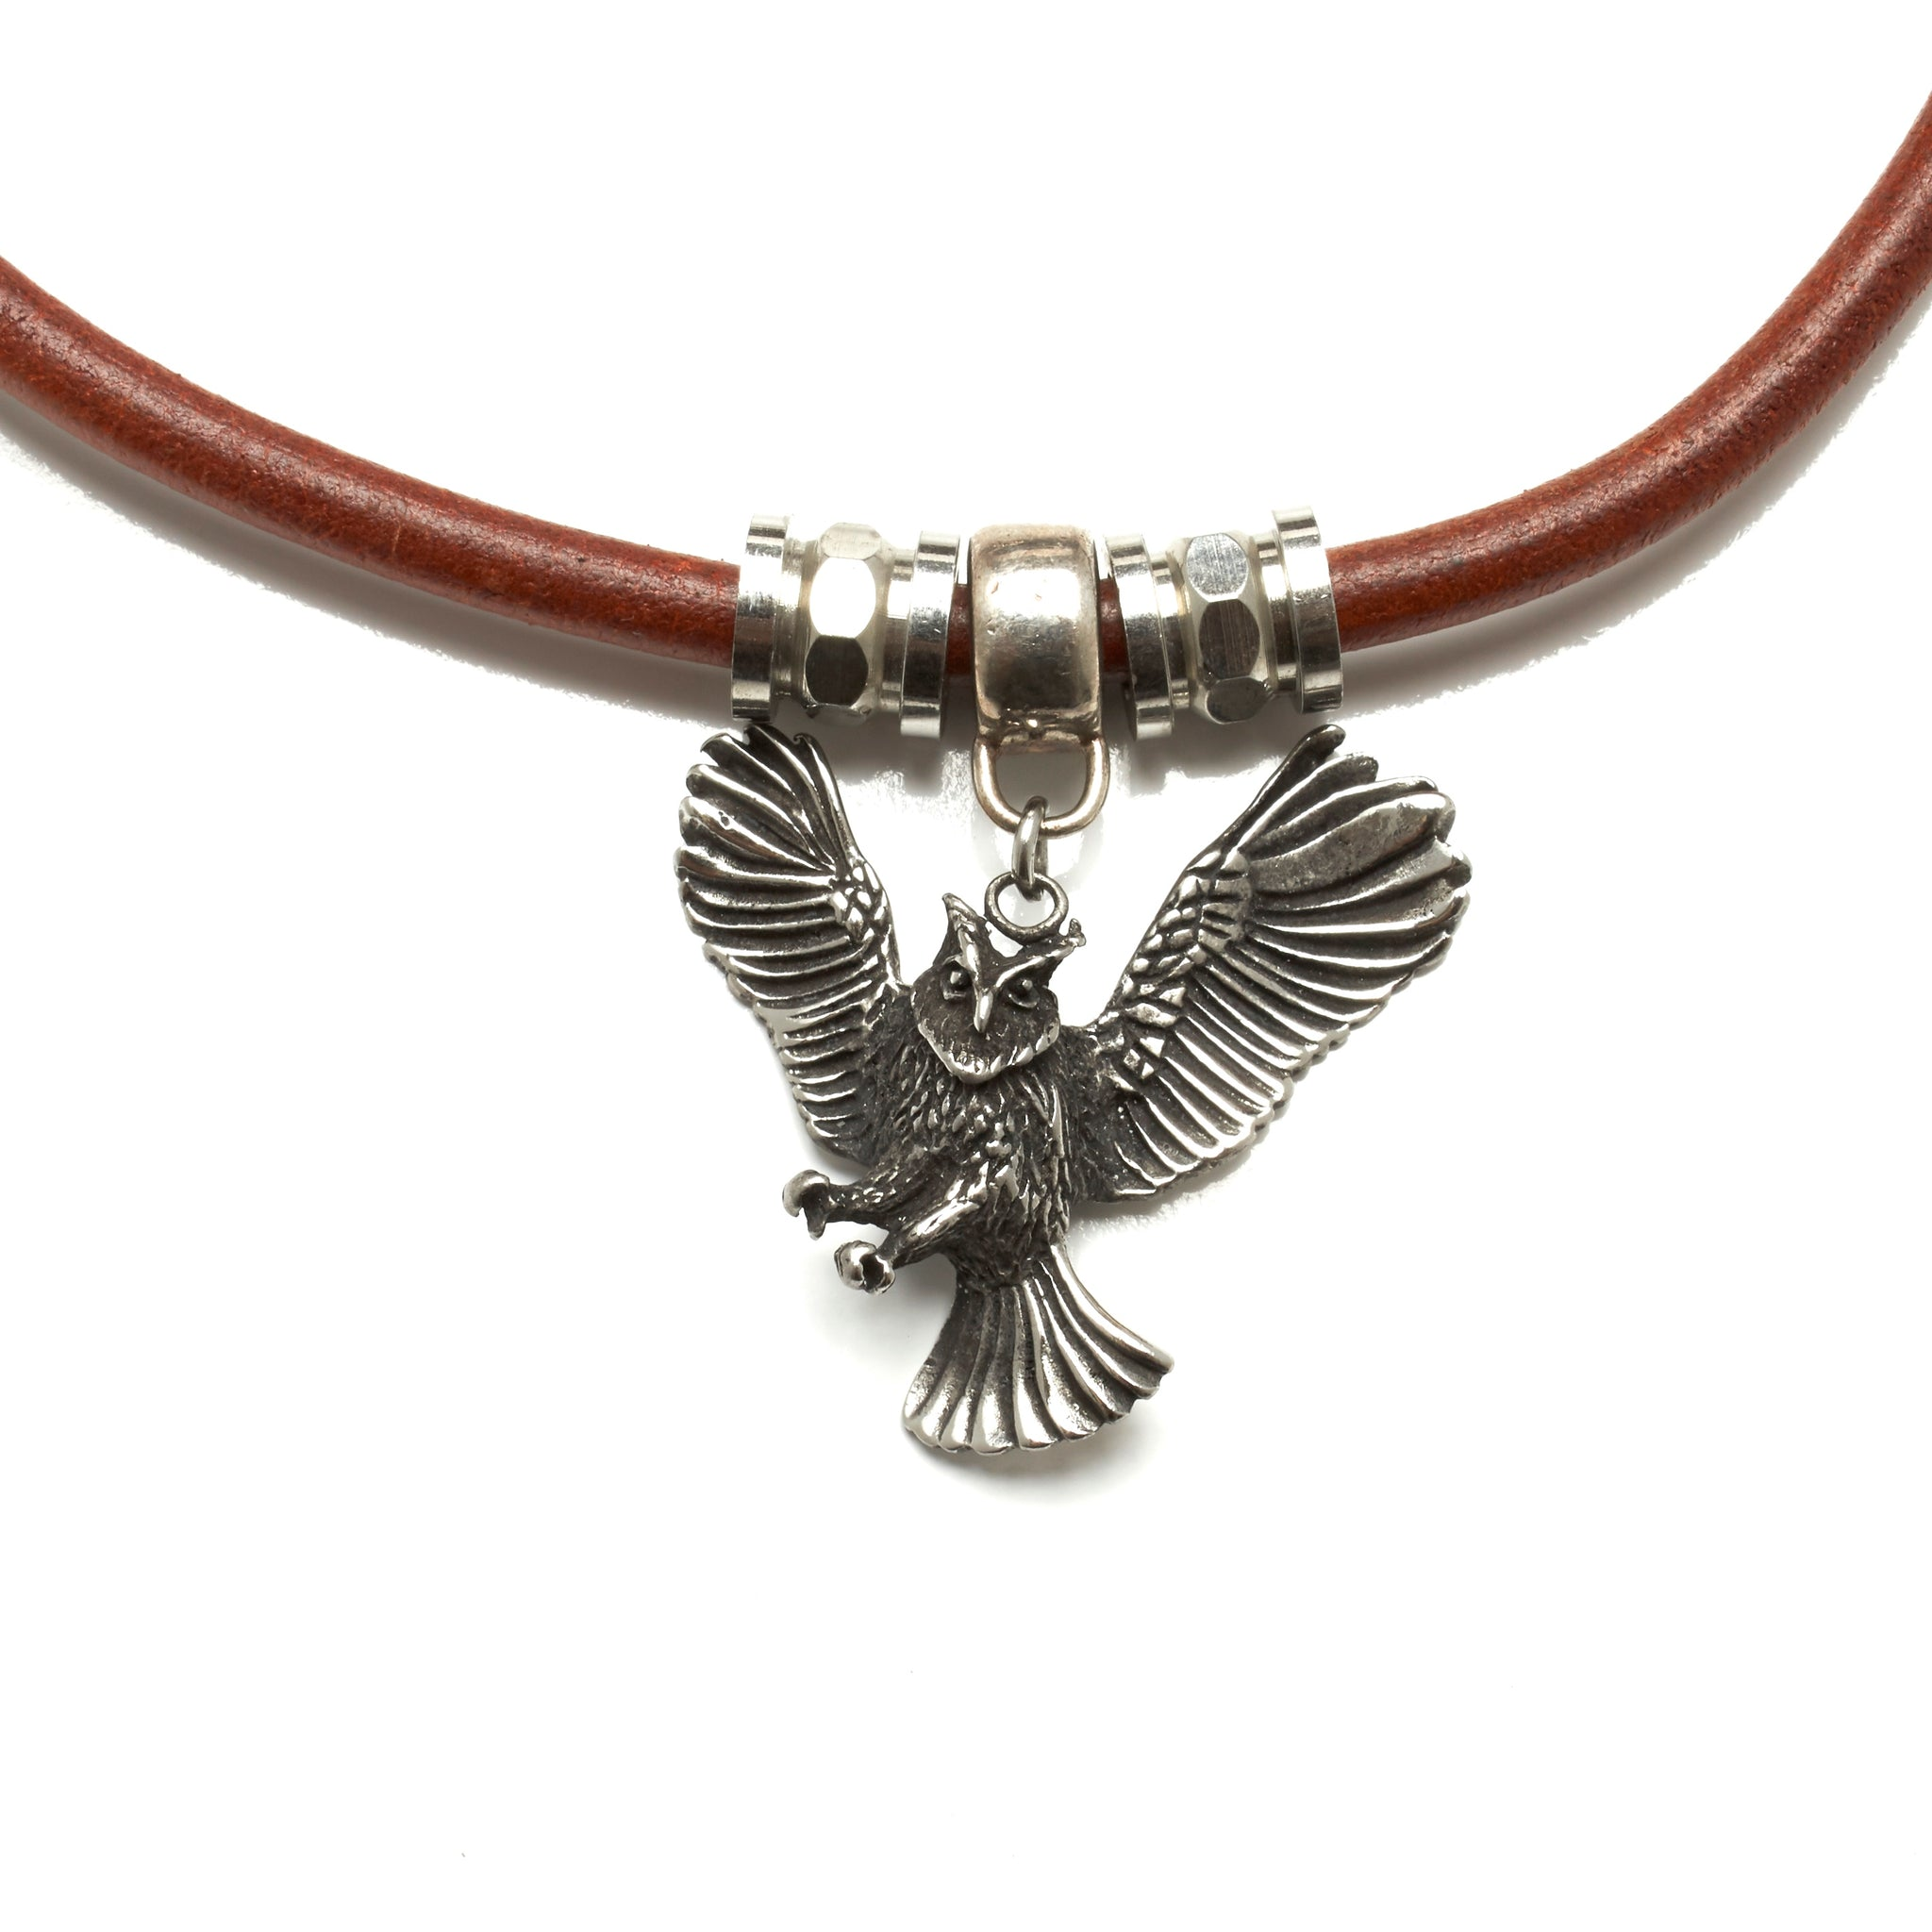 5 MM ROUND LEATHER NECKLACE WITH STAINLESS STEEL OWL PENDANT AND BEADS. by nyet jewelry.